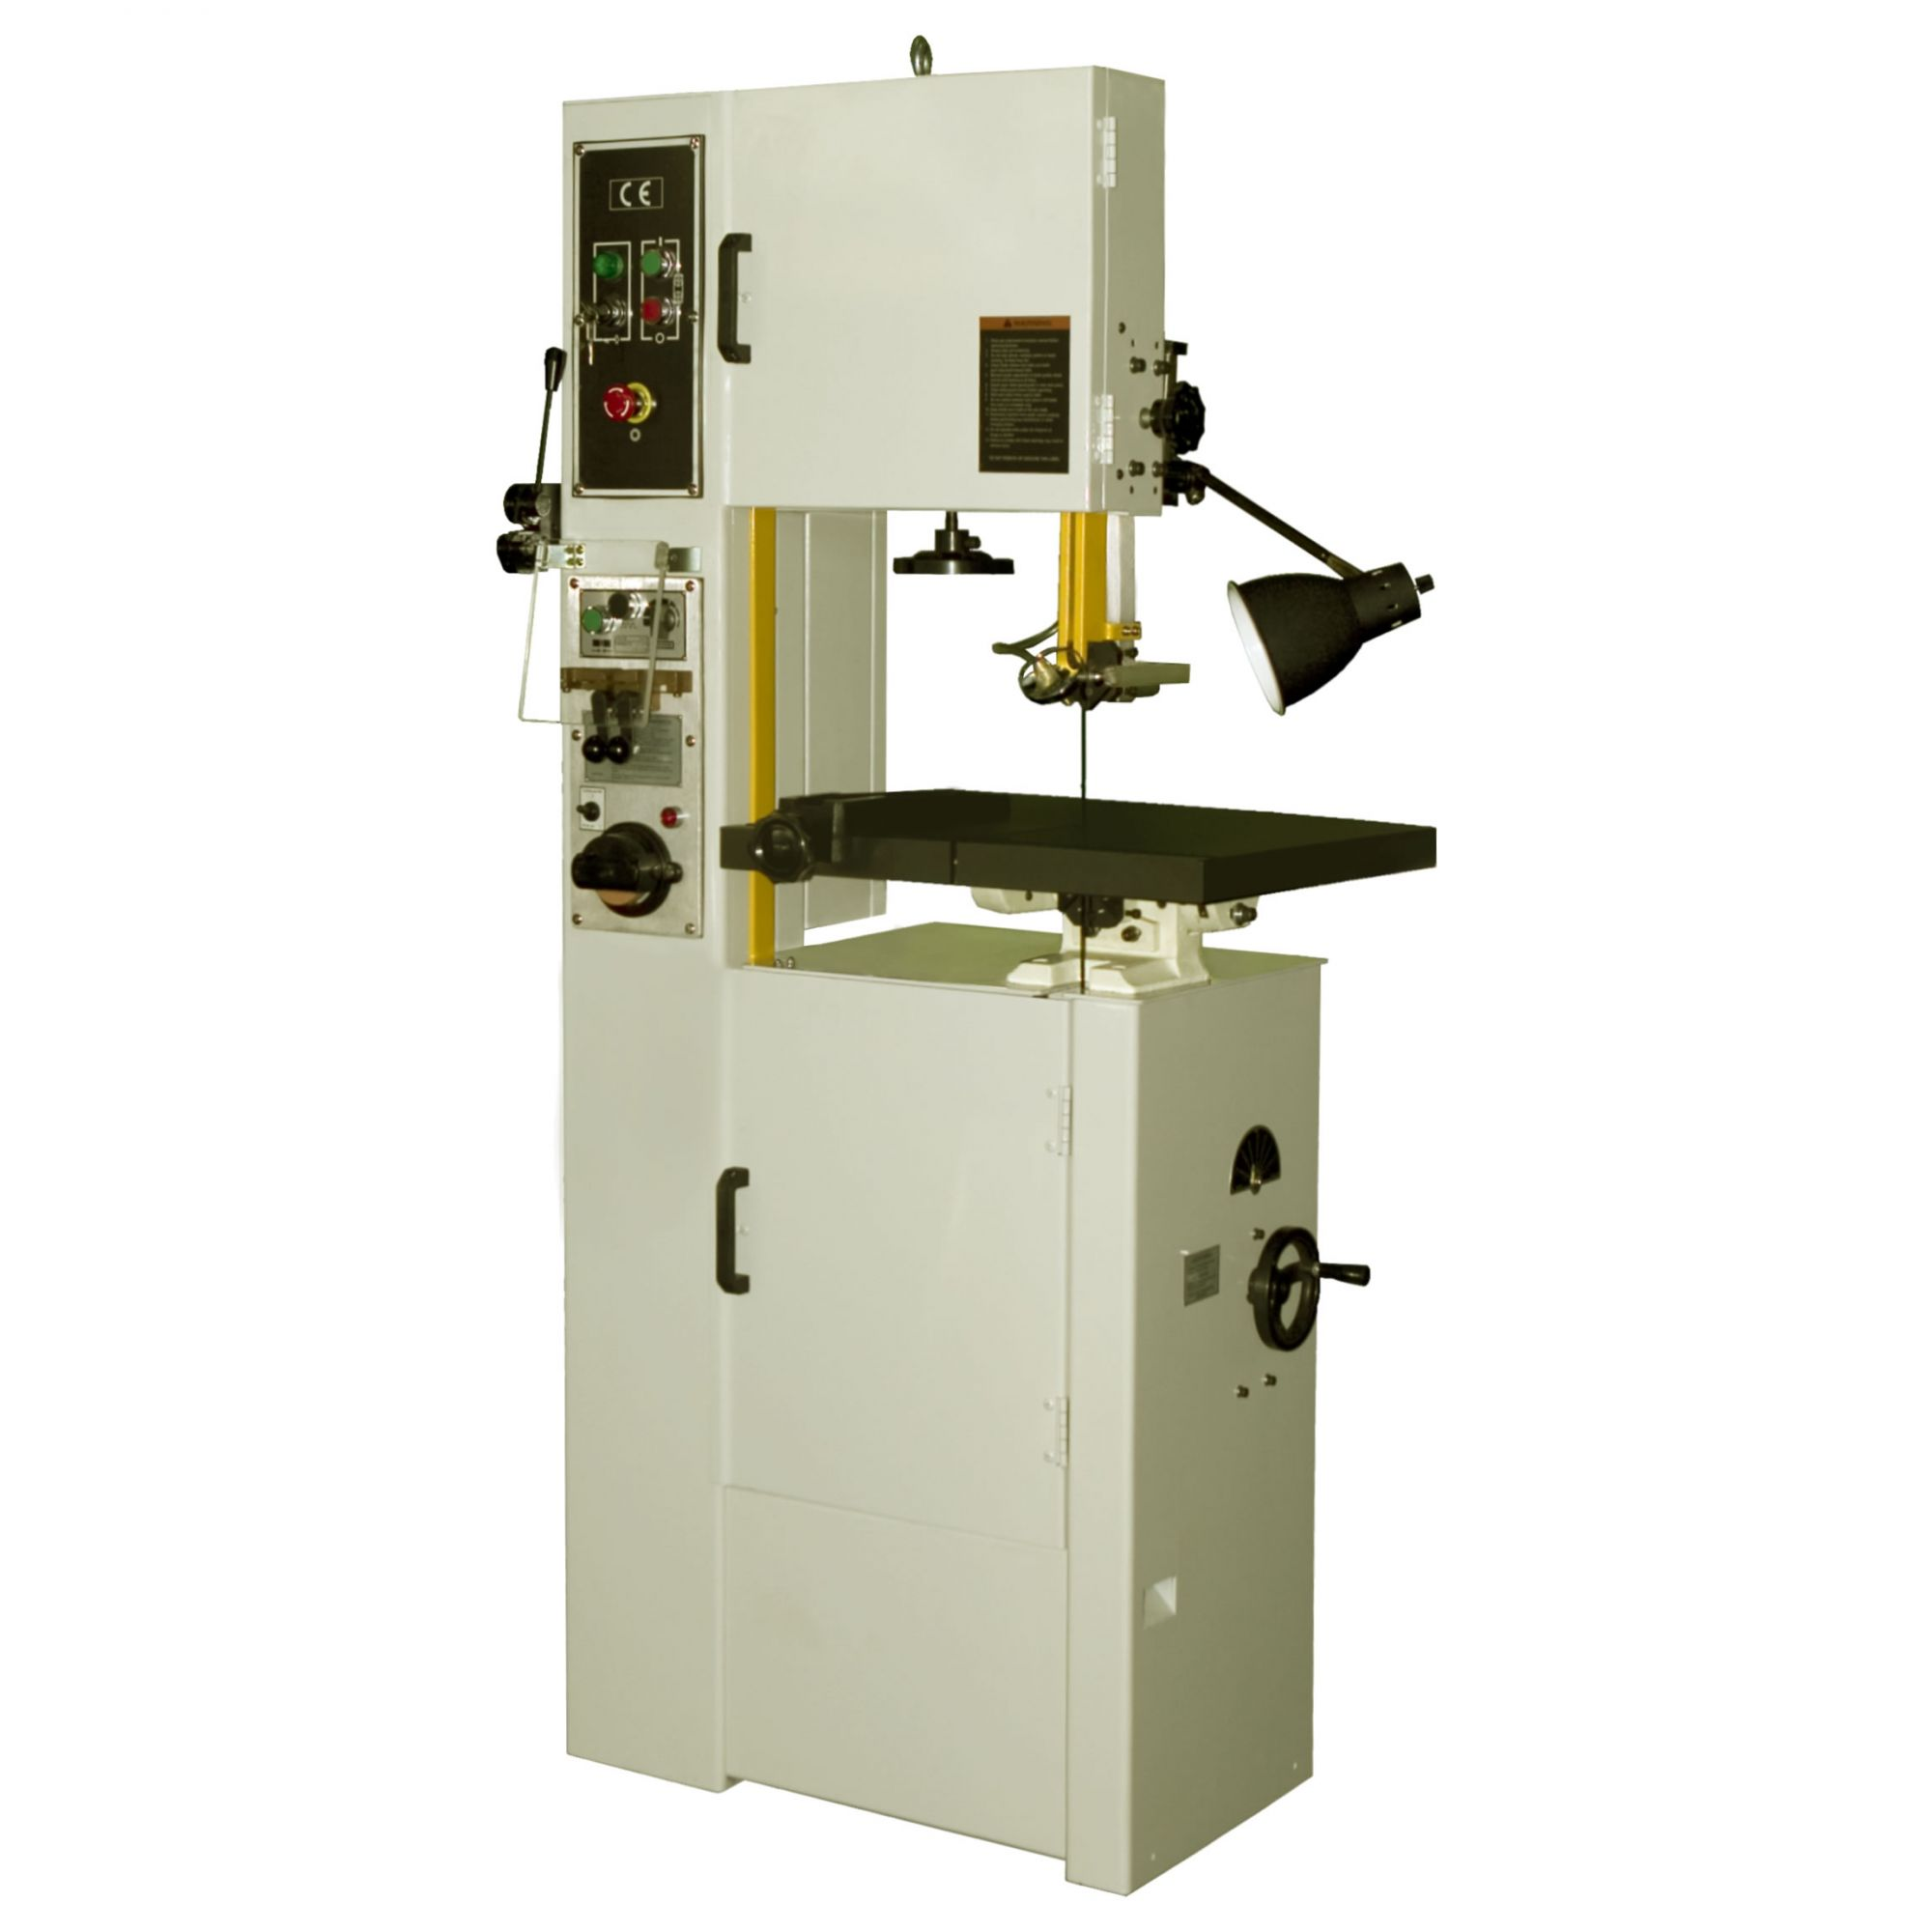 SD-1408 Vertical Bandsaw